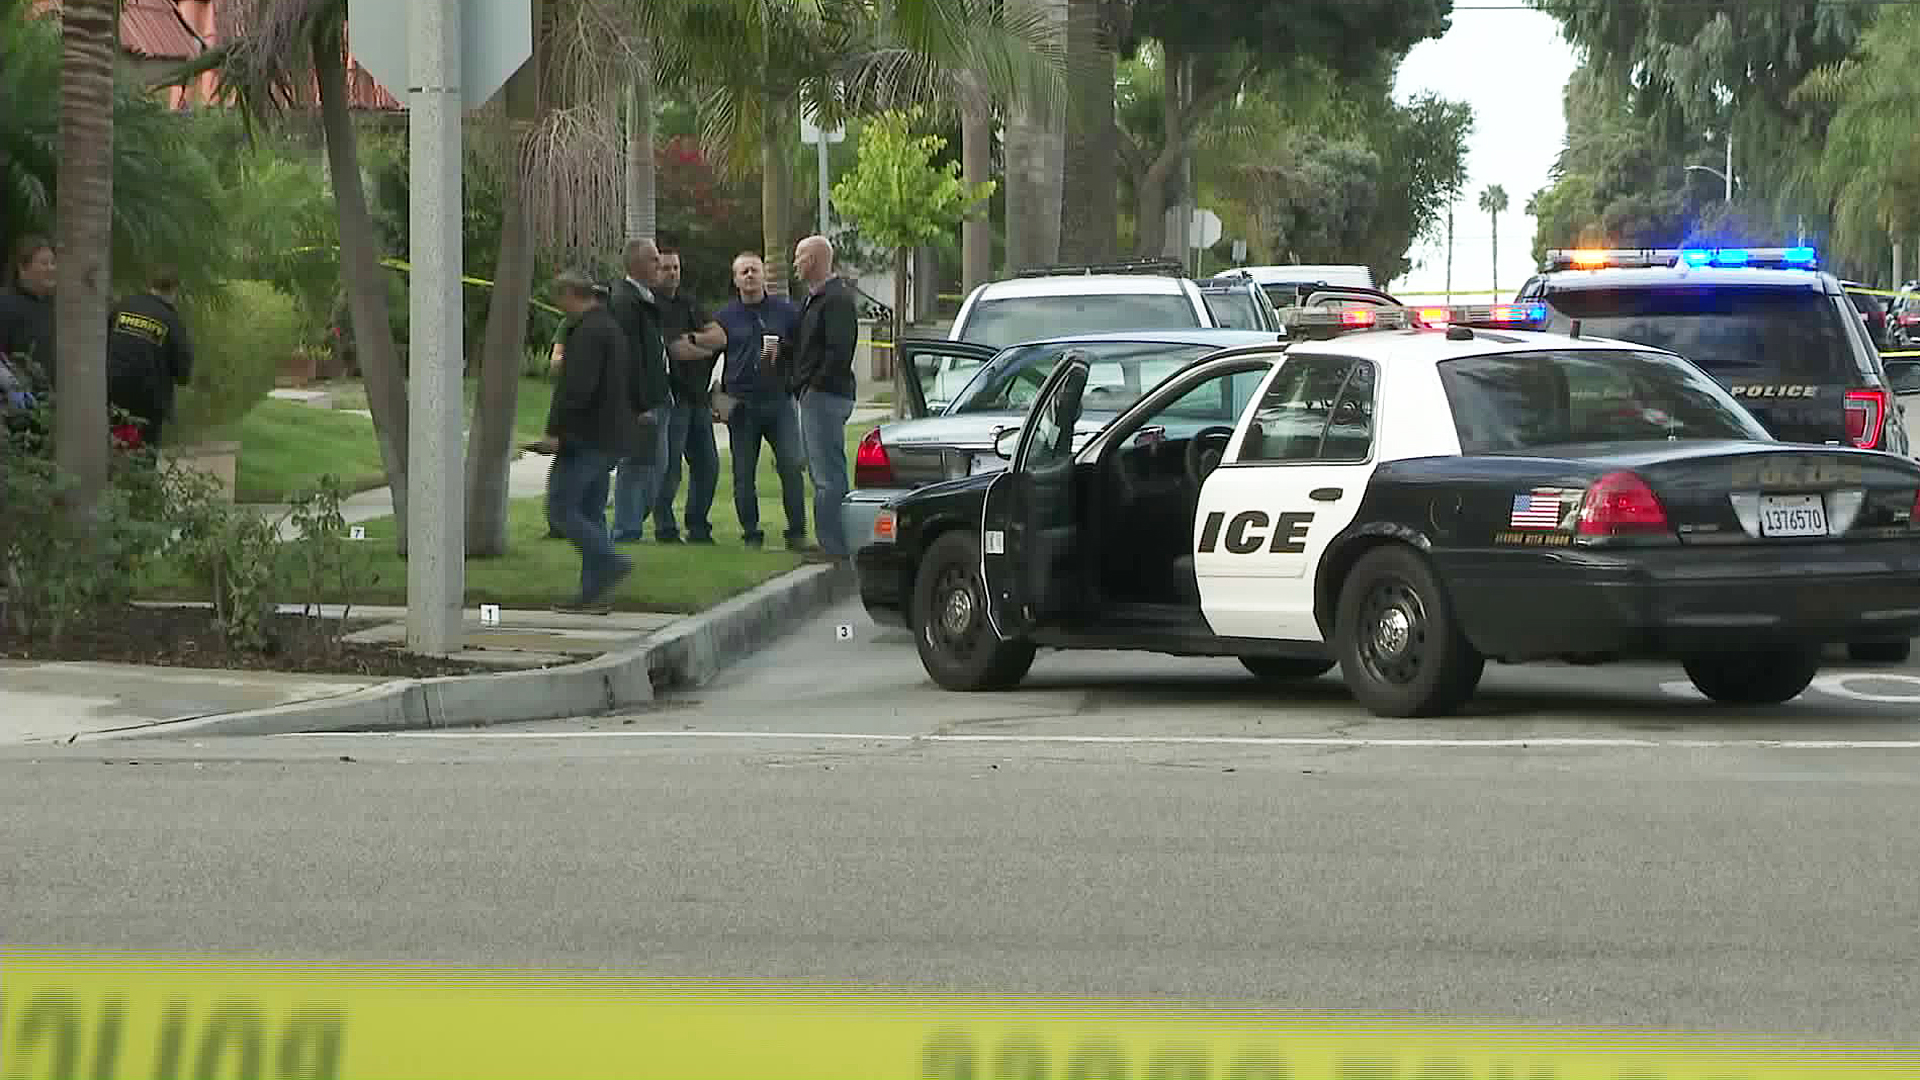 An investigation is underway in Huntington Beach following an officer-involved shooting on Oct. 11, 2018. (Credit: KTLA)